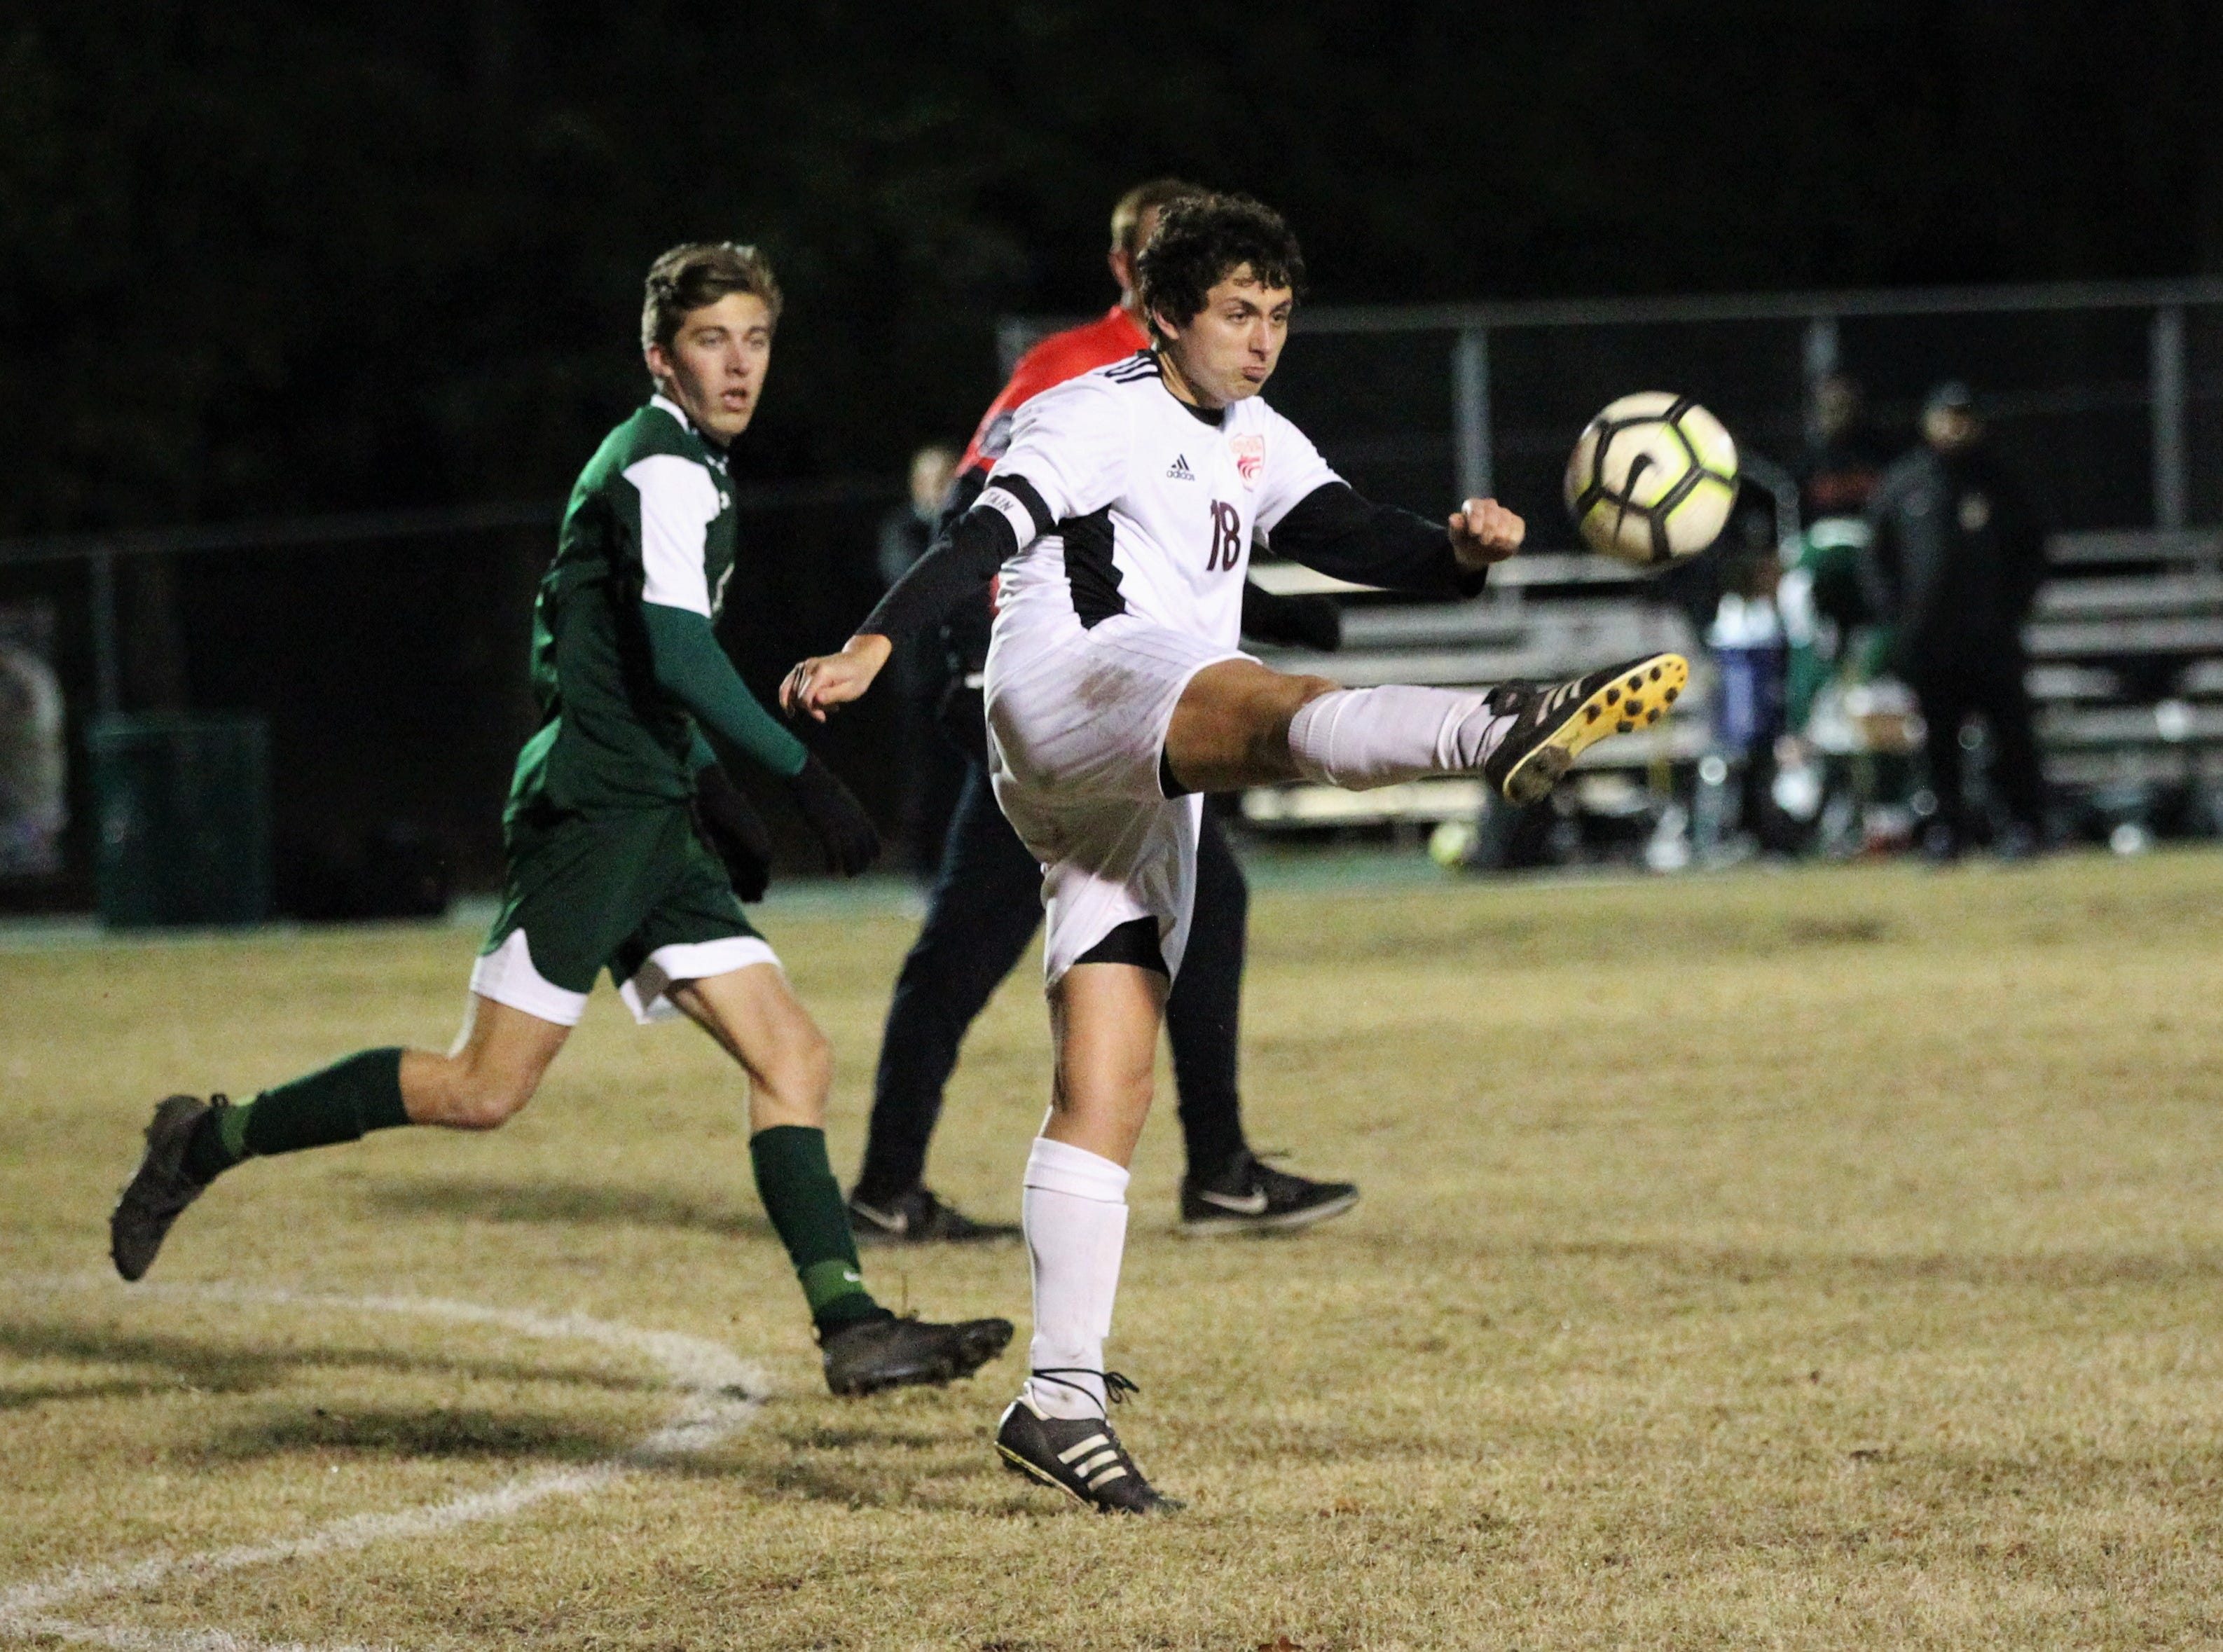 Chiles midfielder Patrick O'Sullivan makes a clearance pass as Chiles' boys soccer team beat Lincoln 1-0 in a District 2-4A semifinal on Jan. 30, 2019.